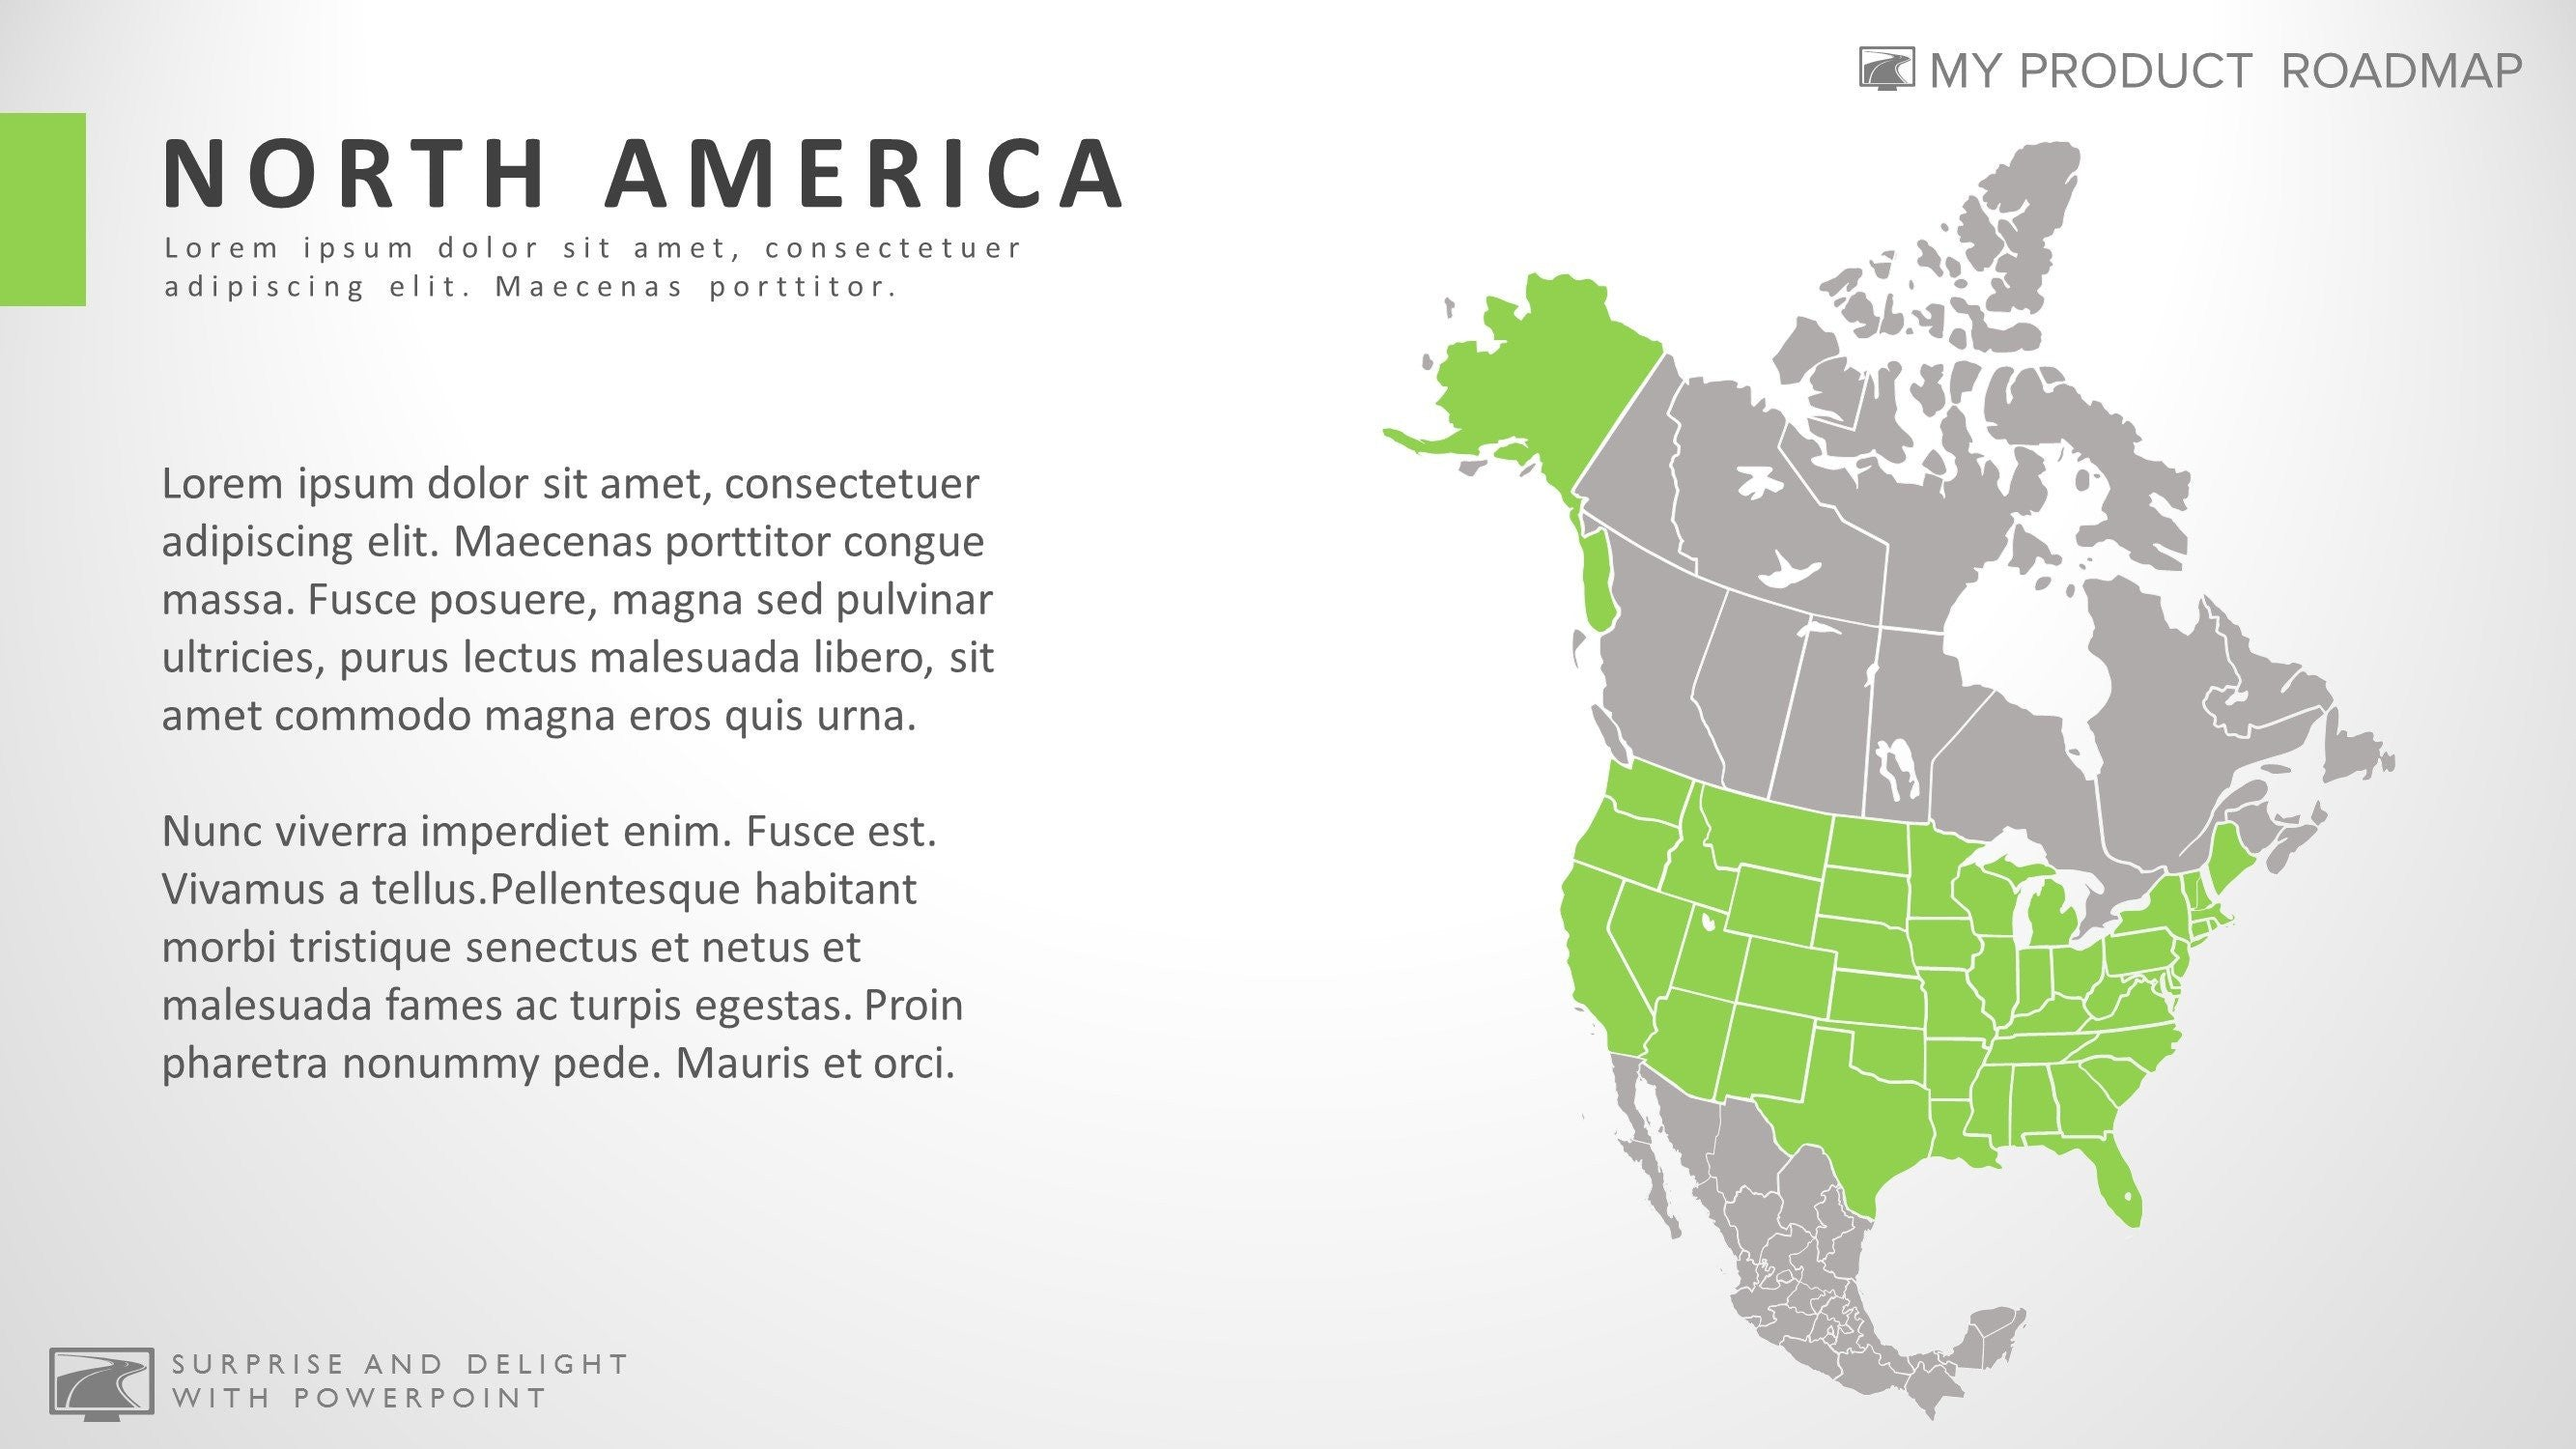 North america fancy powerpoint map smartart presentation design gumiabroncs Image collections